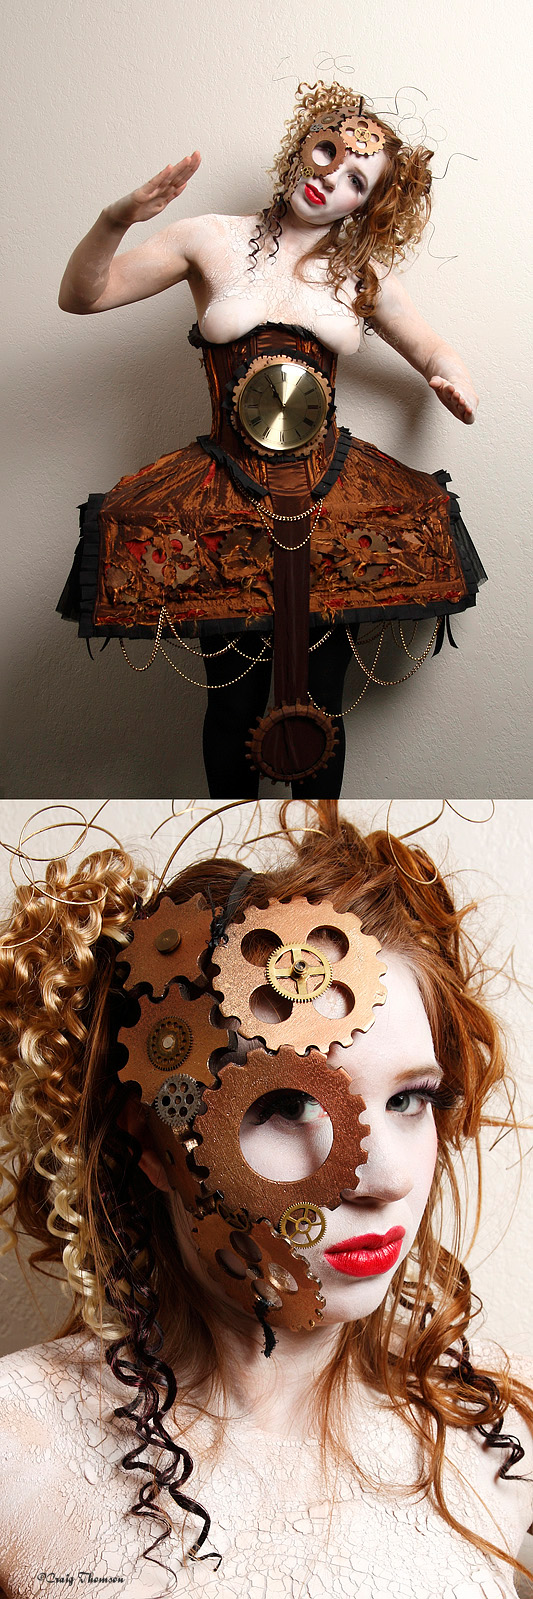 Steampunk broken mechanical doll costume with wind-up clock, wires in hair, broken porcelain makeup and gears glued to face.